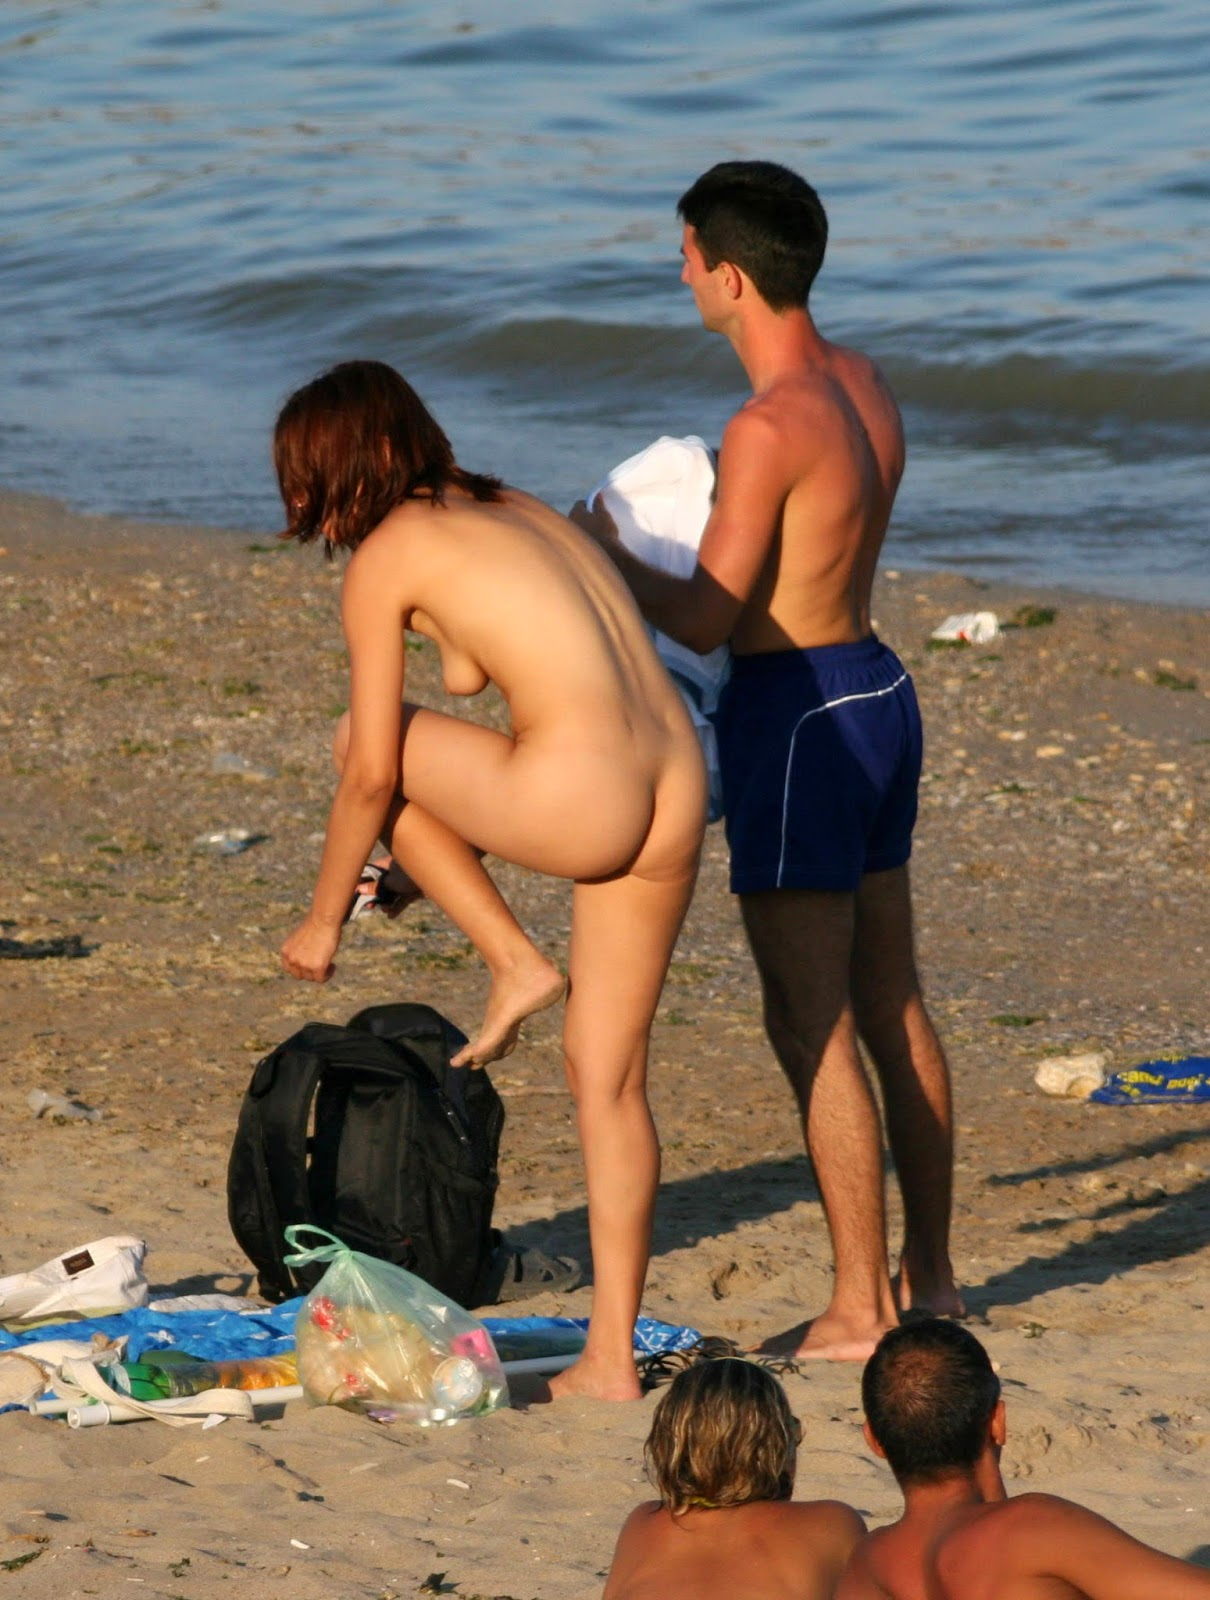 Romanian Nudist 27